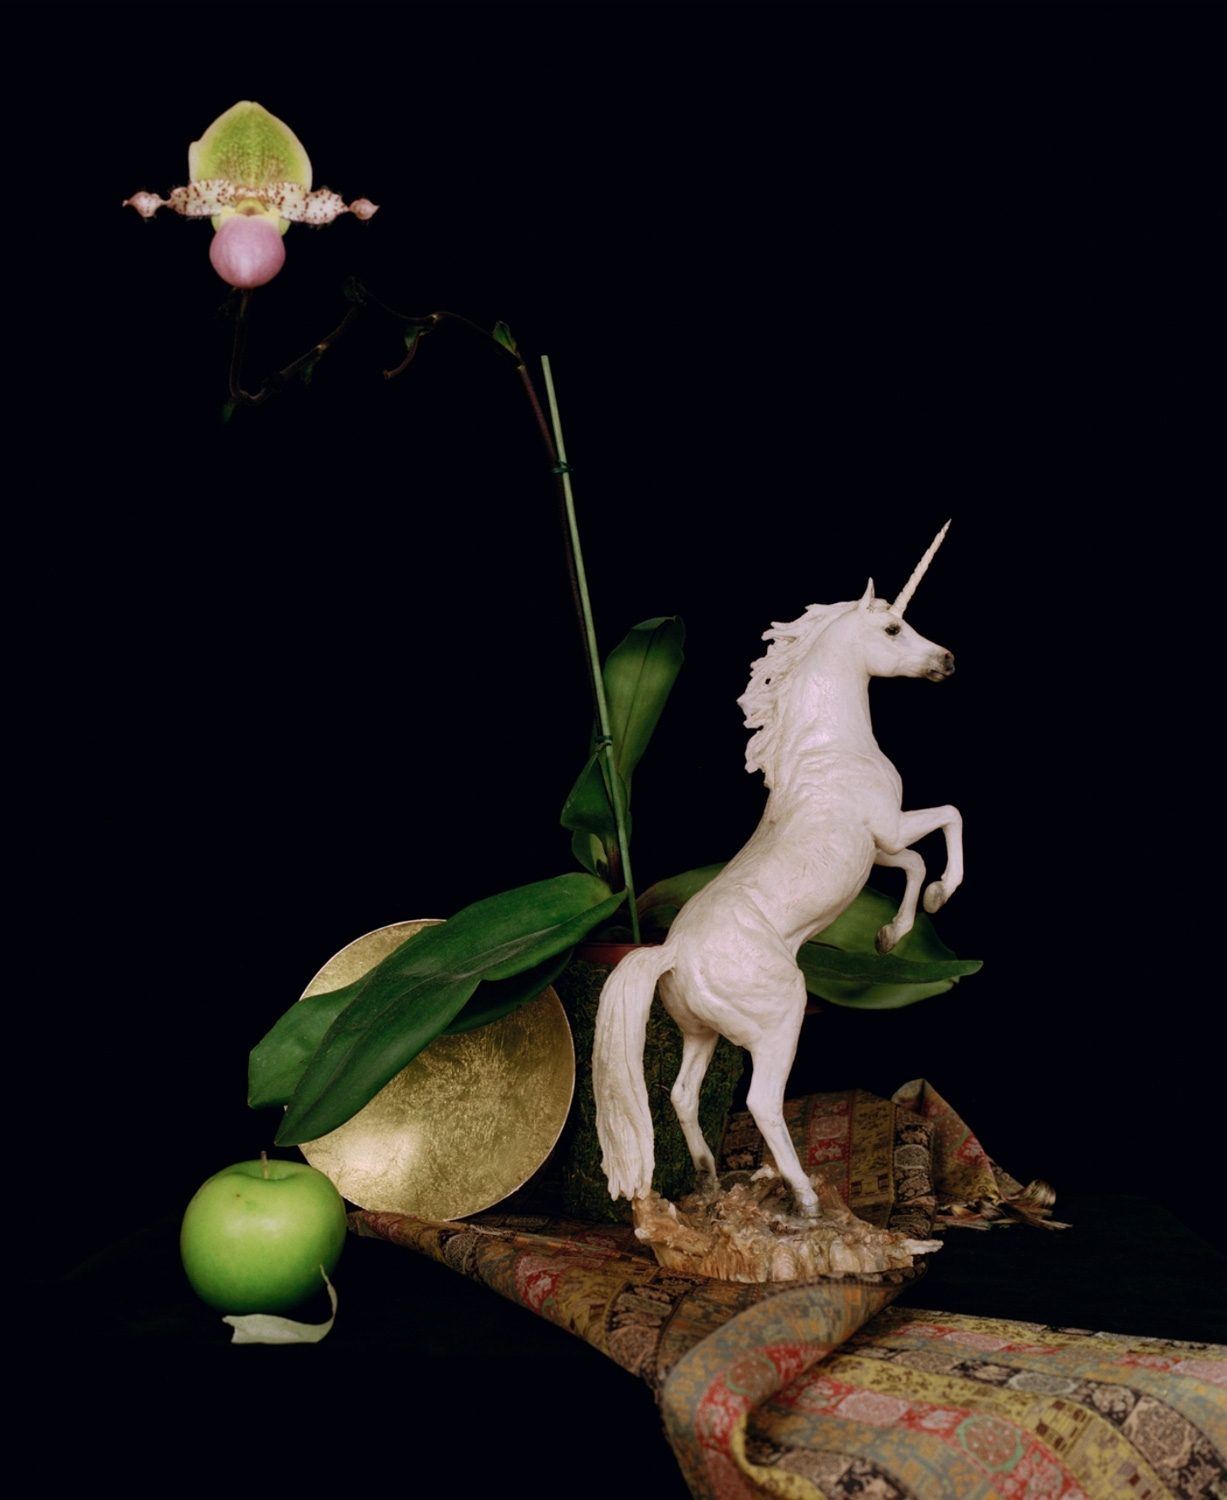 Still life with a unicorn